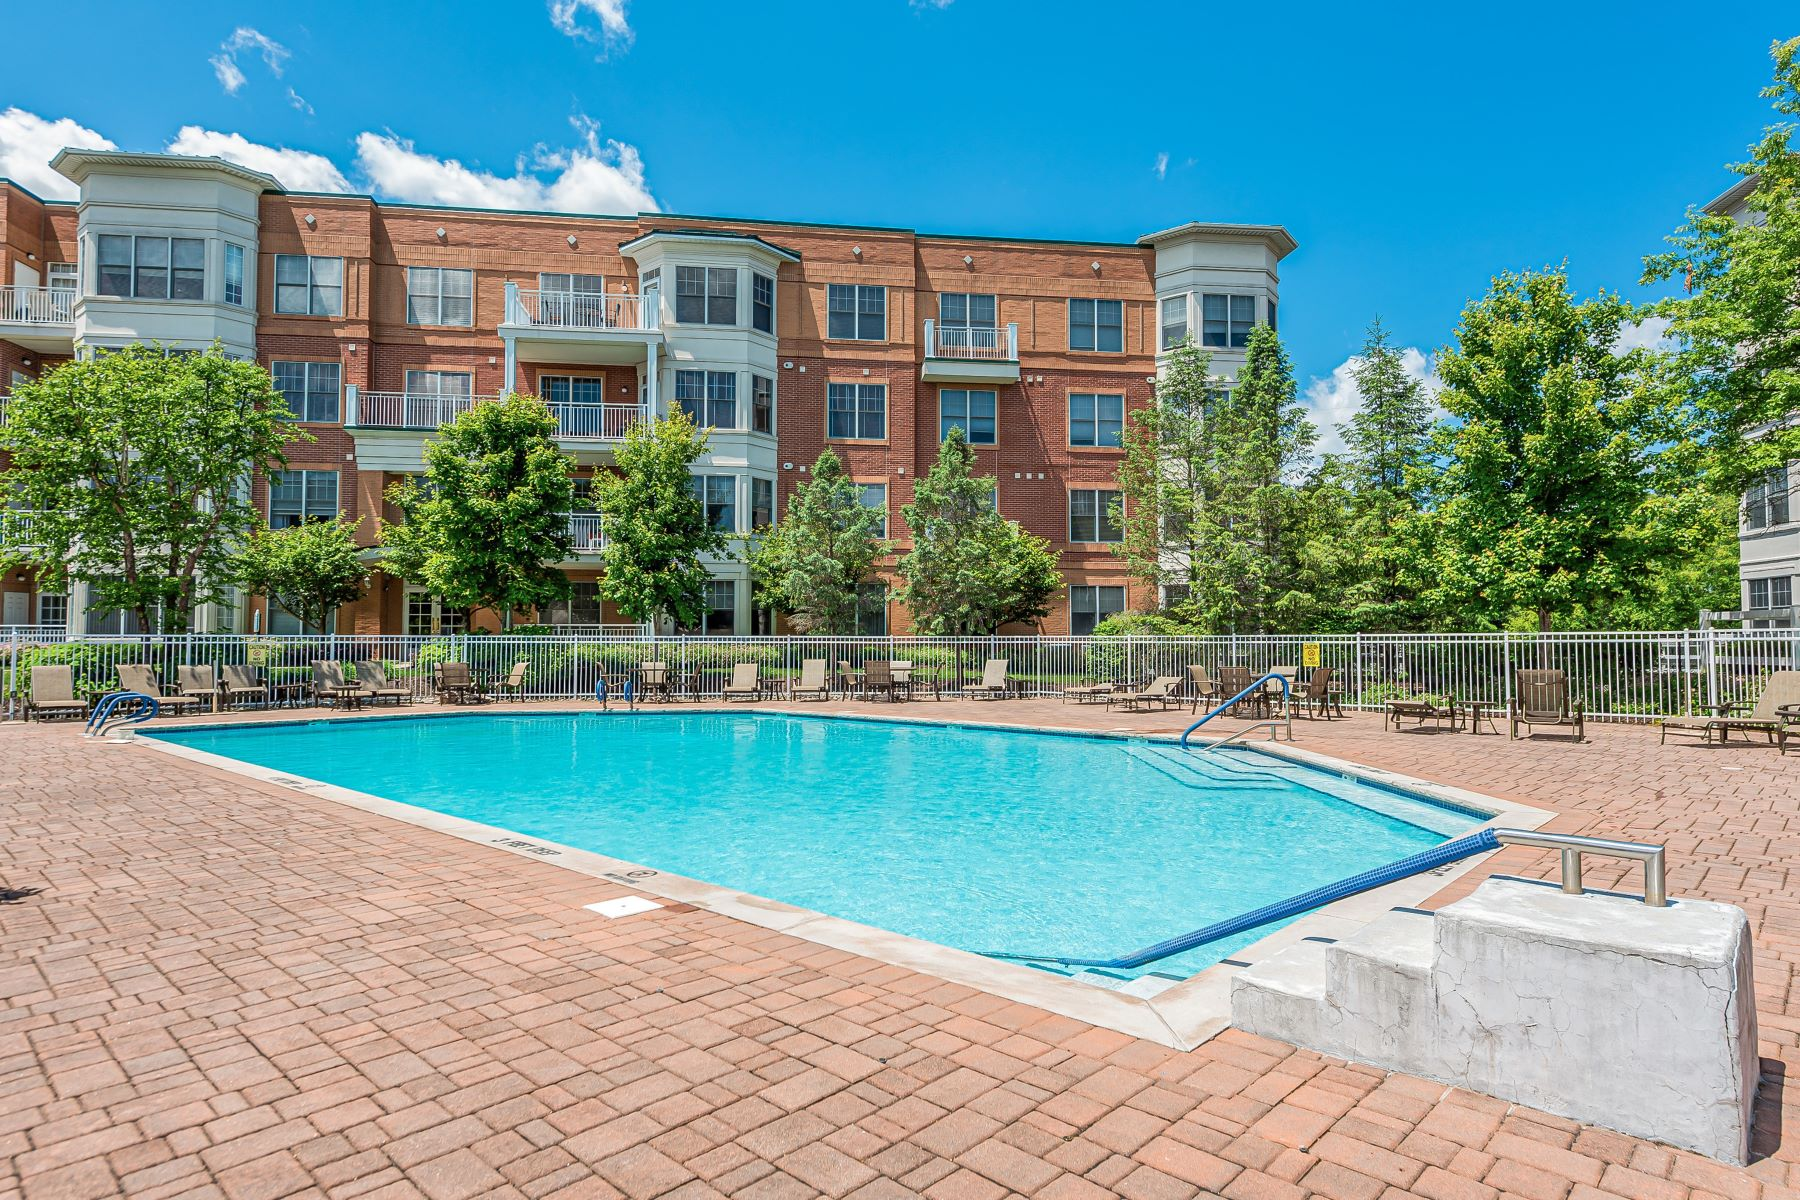 Condominiums for Sale at Open Concept Beekman Model 3208 Pointe Gate Drive Livingston, New Jersey 07039 United States